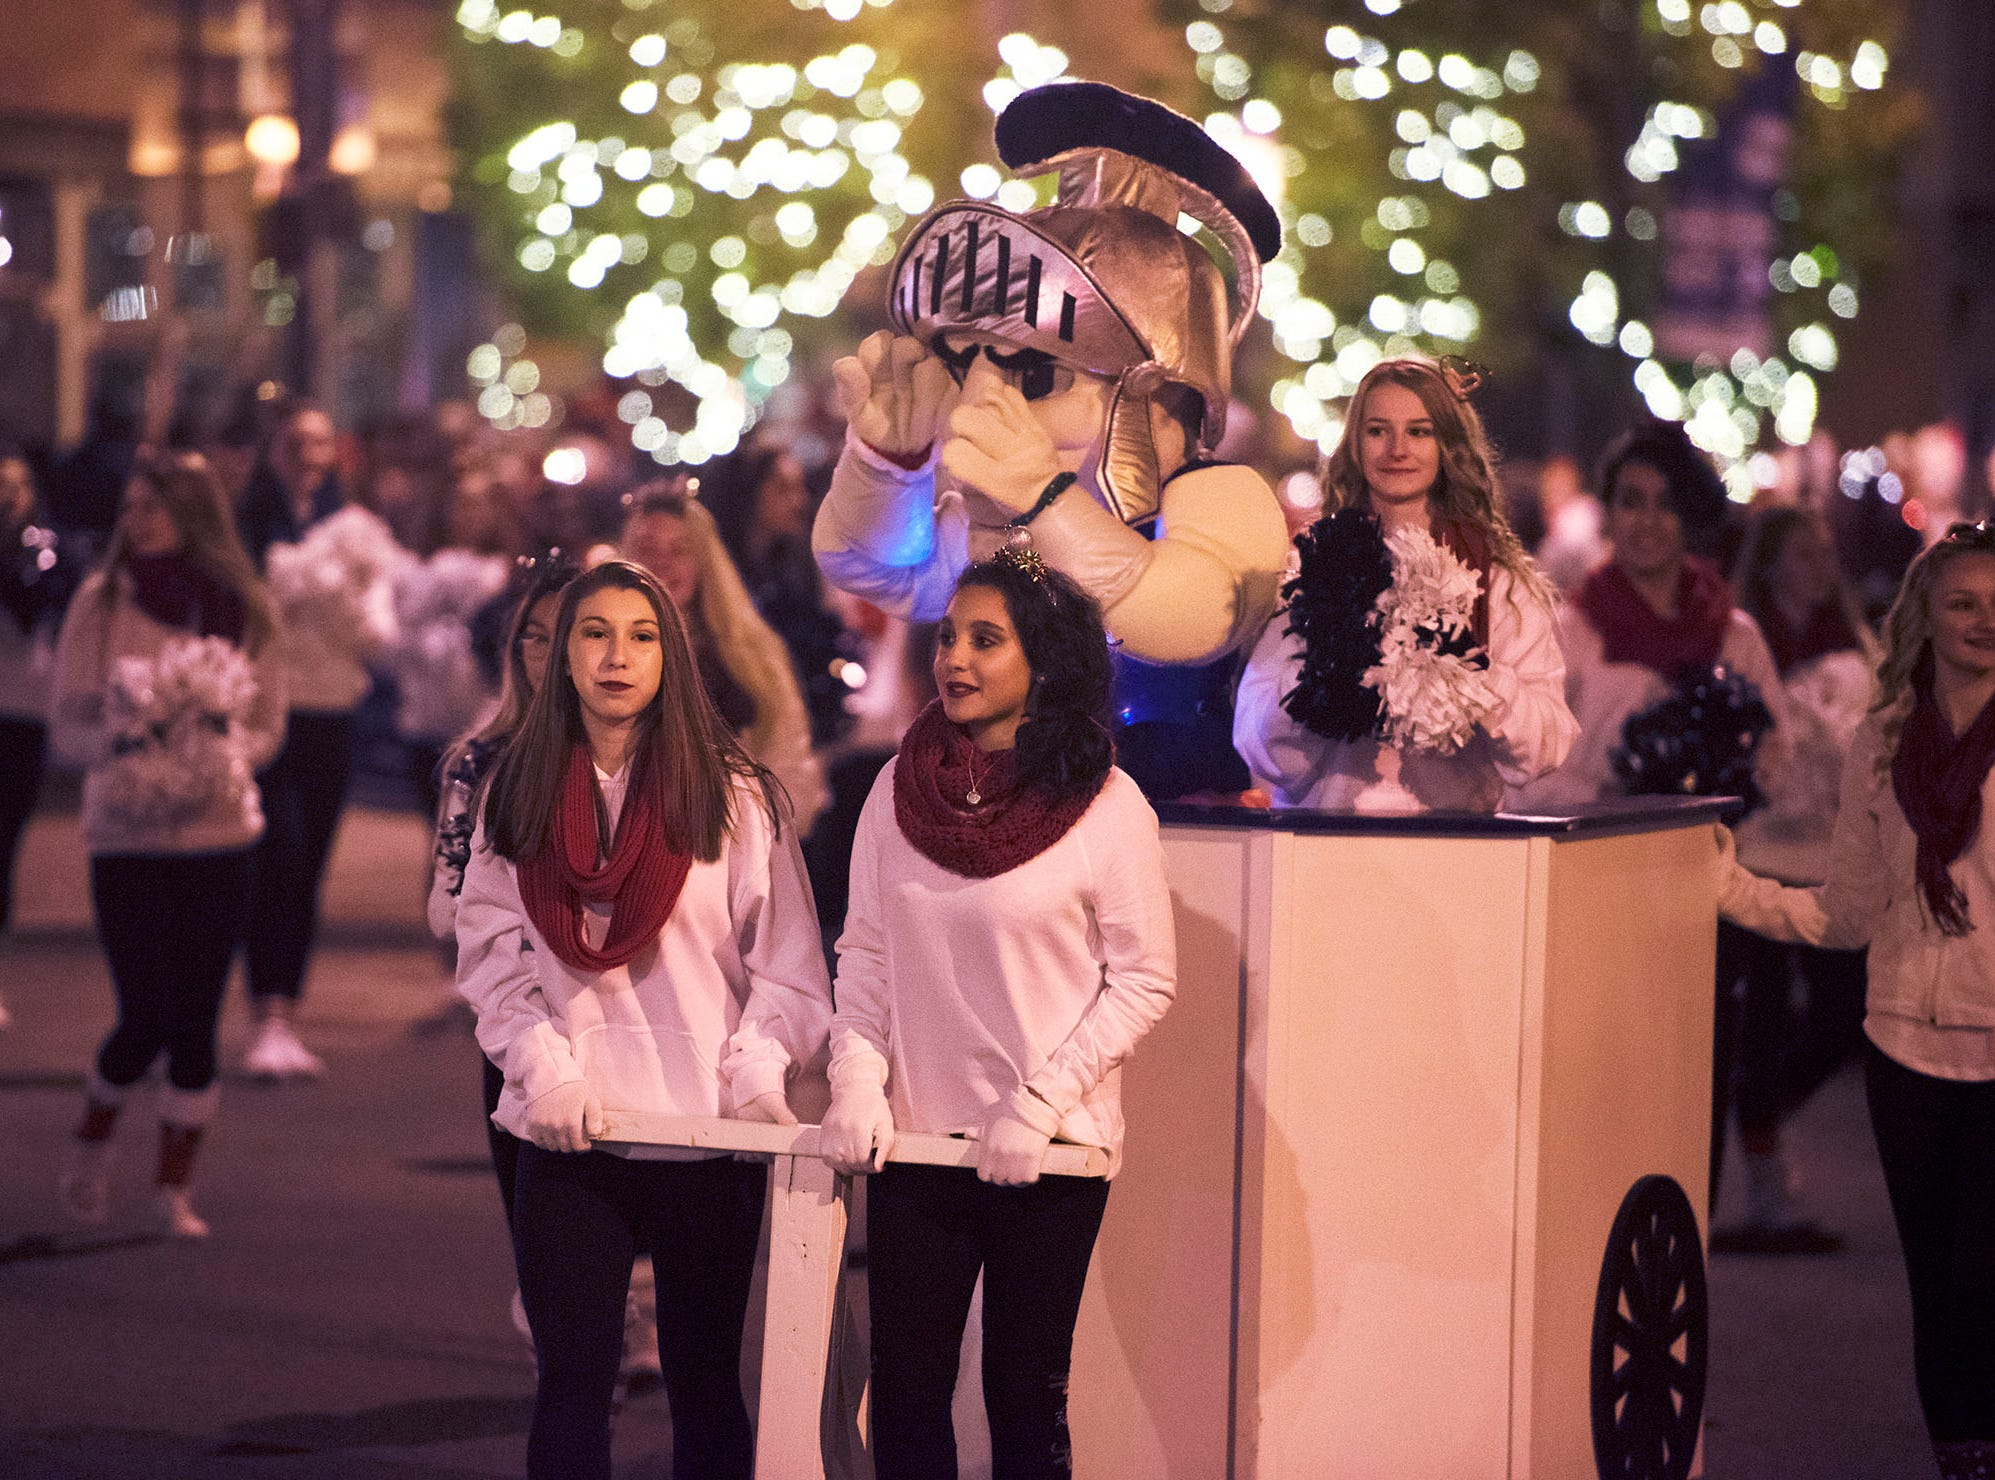 The 48th Annual Chambersburg Christmas Parade, sponsored by Downtown Business Council passes through Memorial Square on Saturday, November 17, 2018.